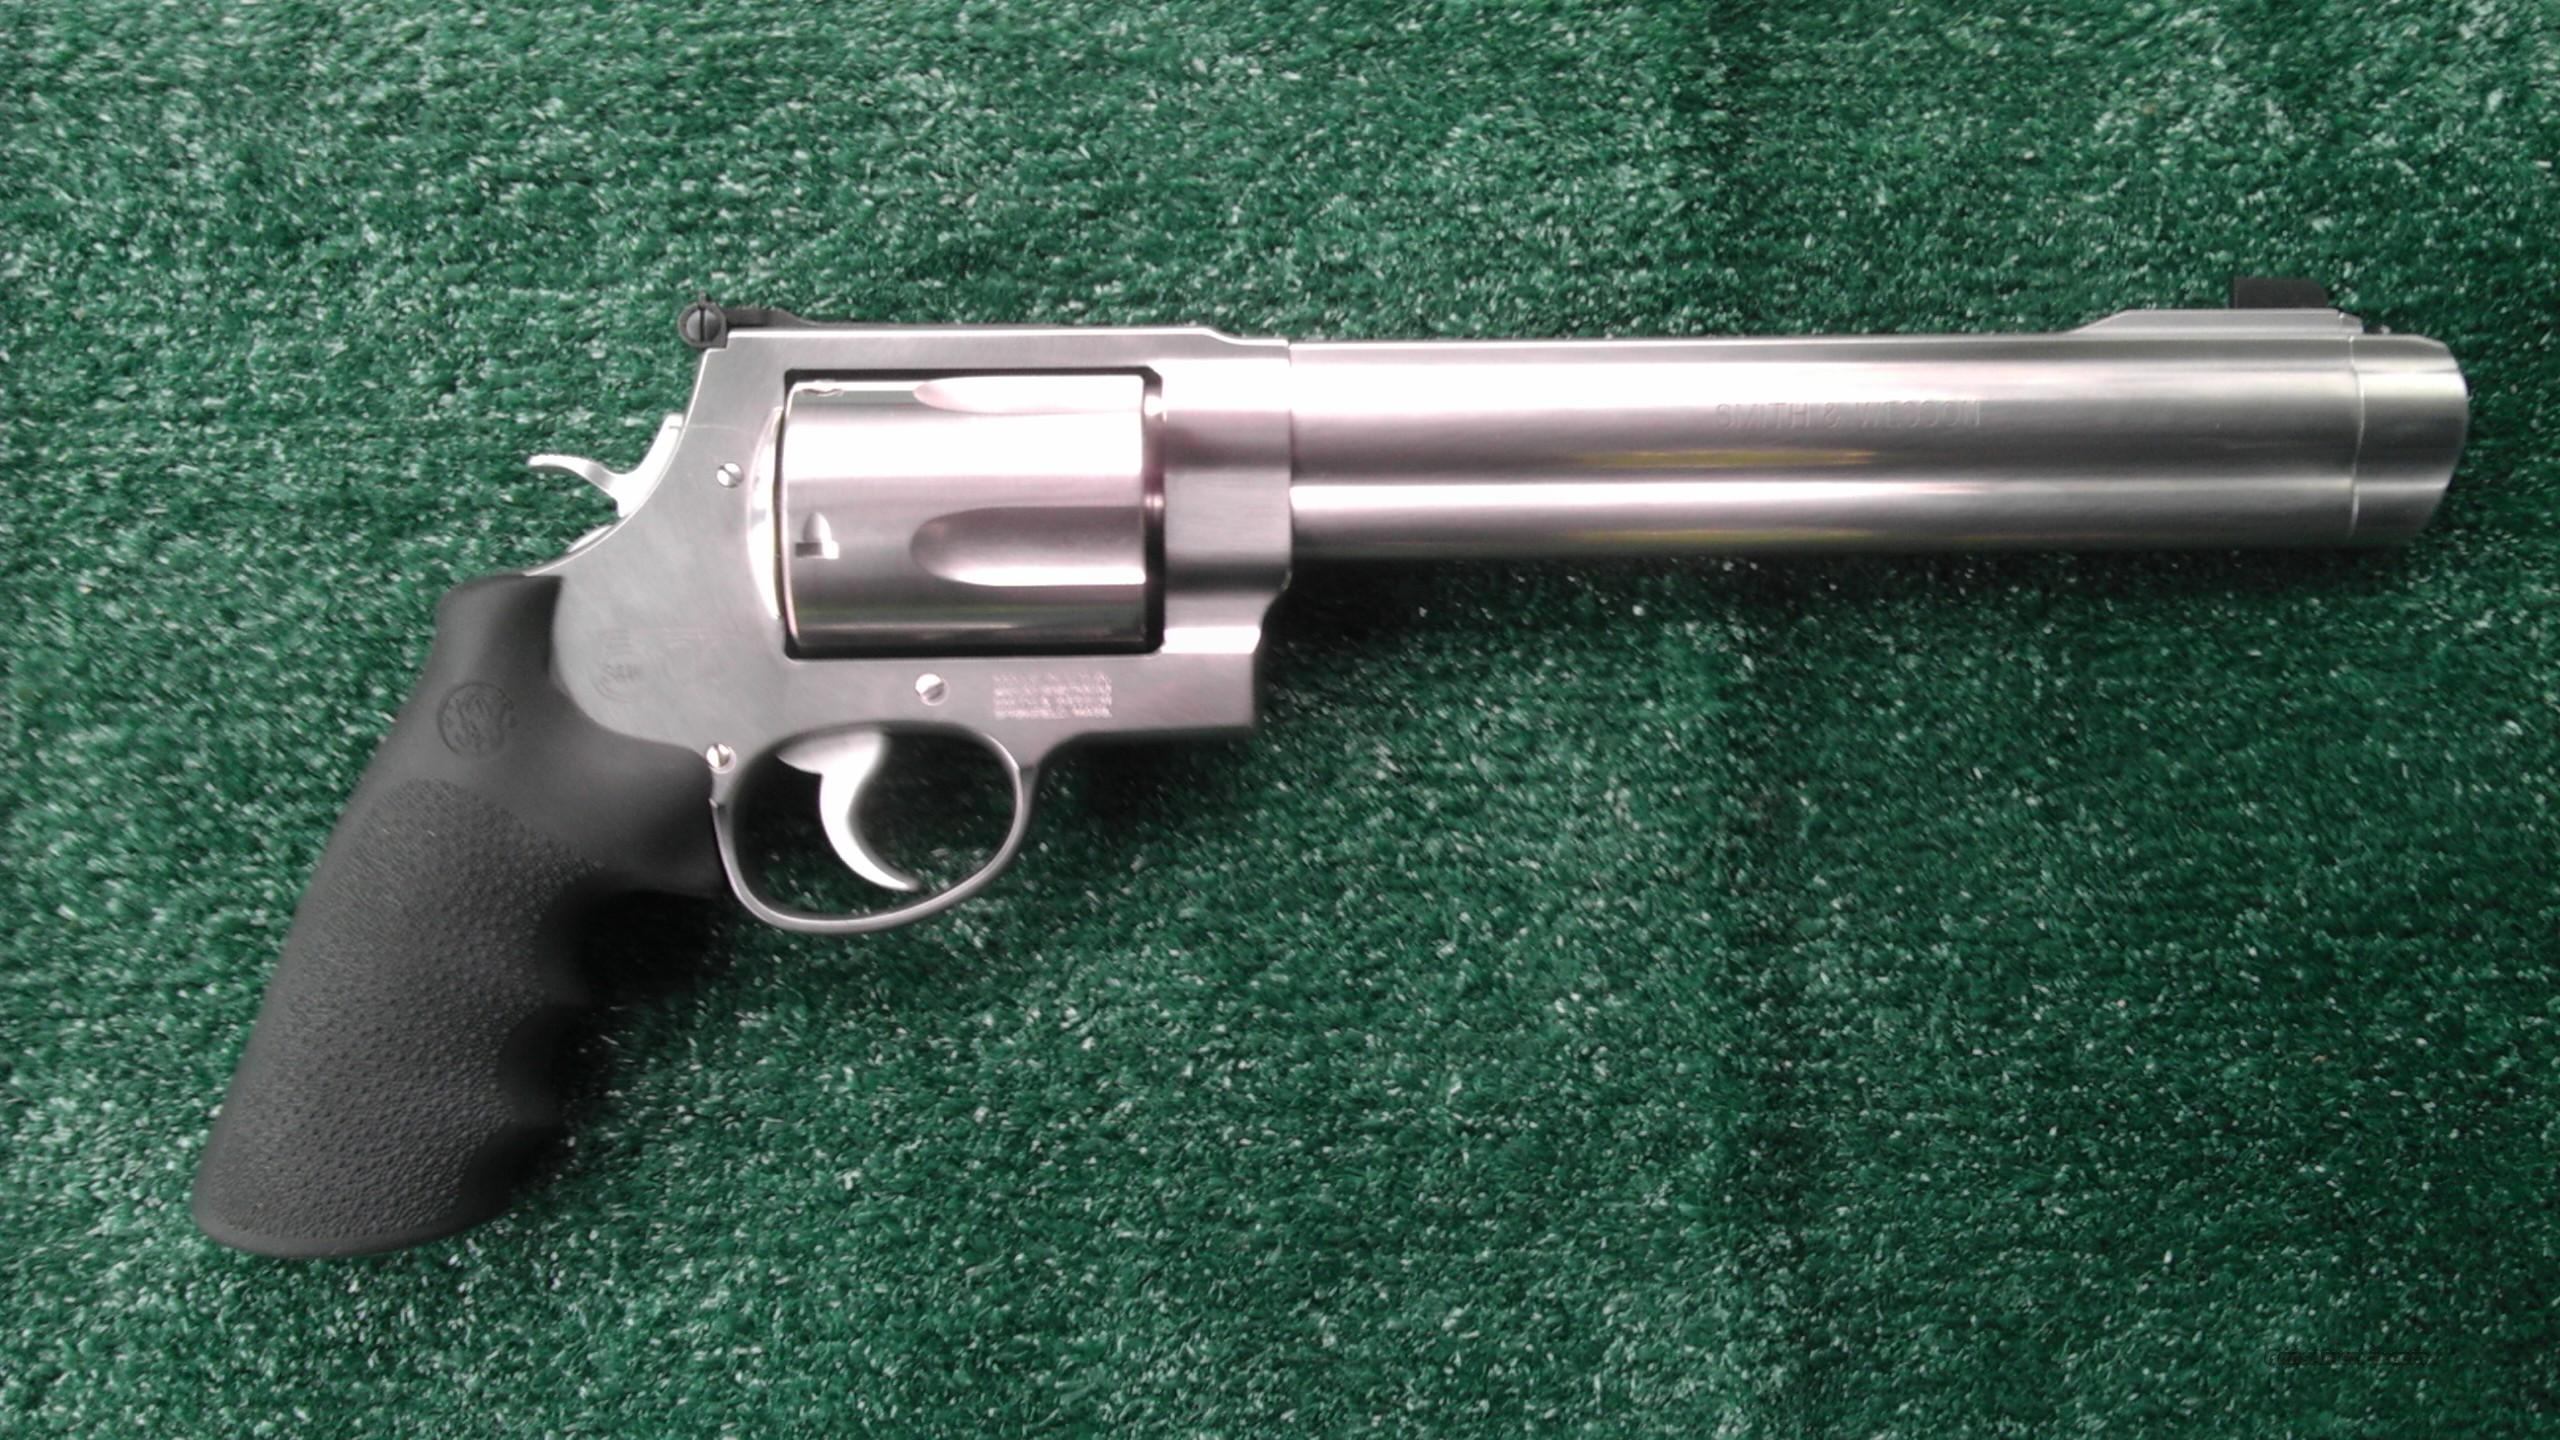 Smith & Wesson .500 Magnum  Guns > Pistols > Smith & Wesson Revolvers > Full Frame Revolver